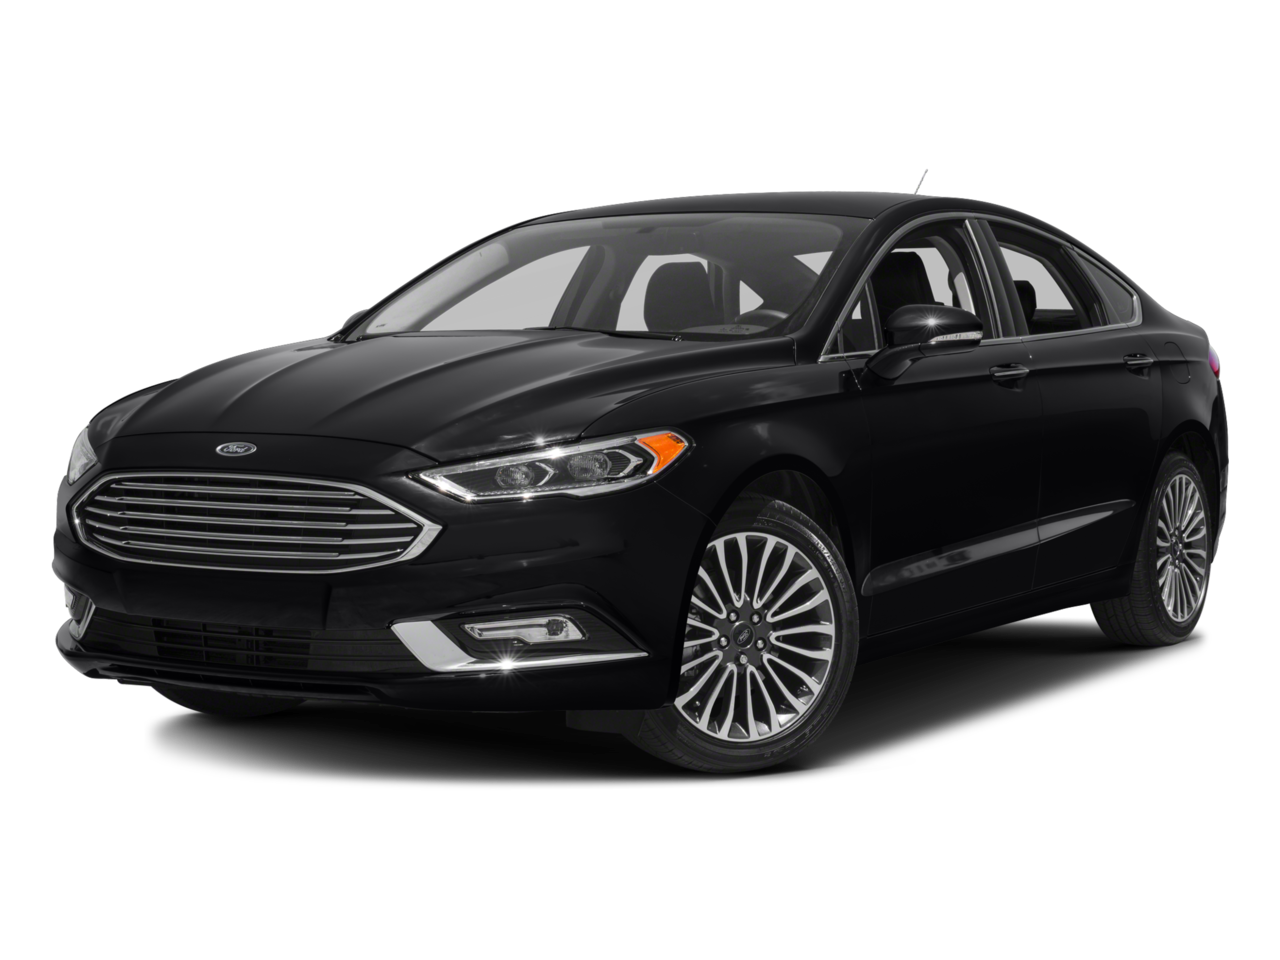 2017 ford fusion in phoenix az. Black Bedroom Furniture Sets. Home Design Ideas